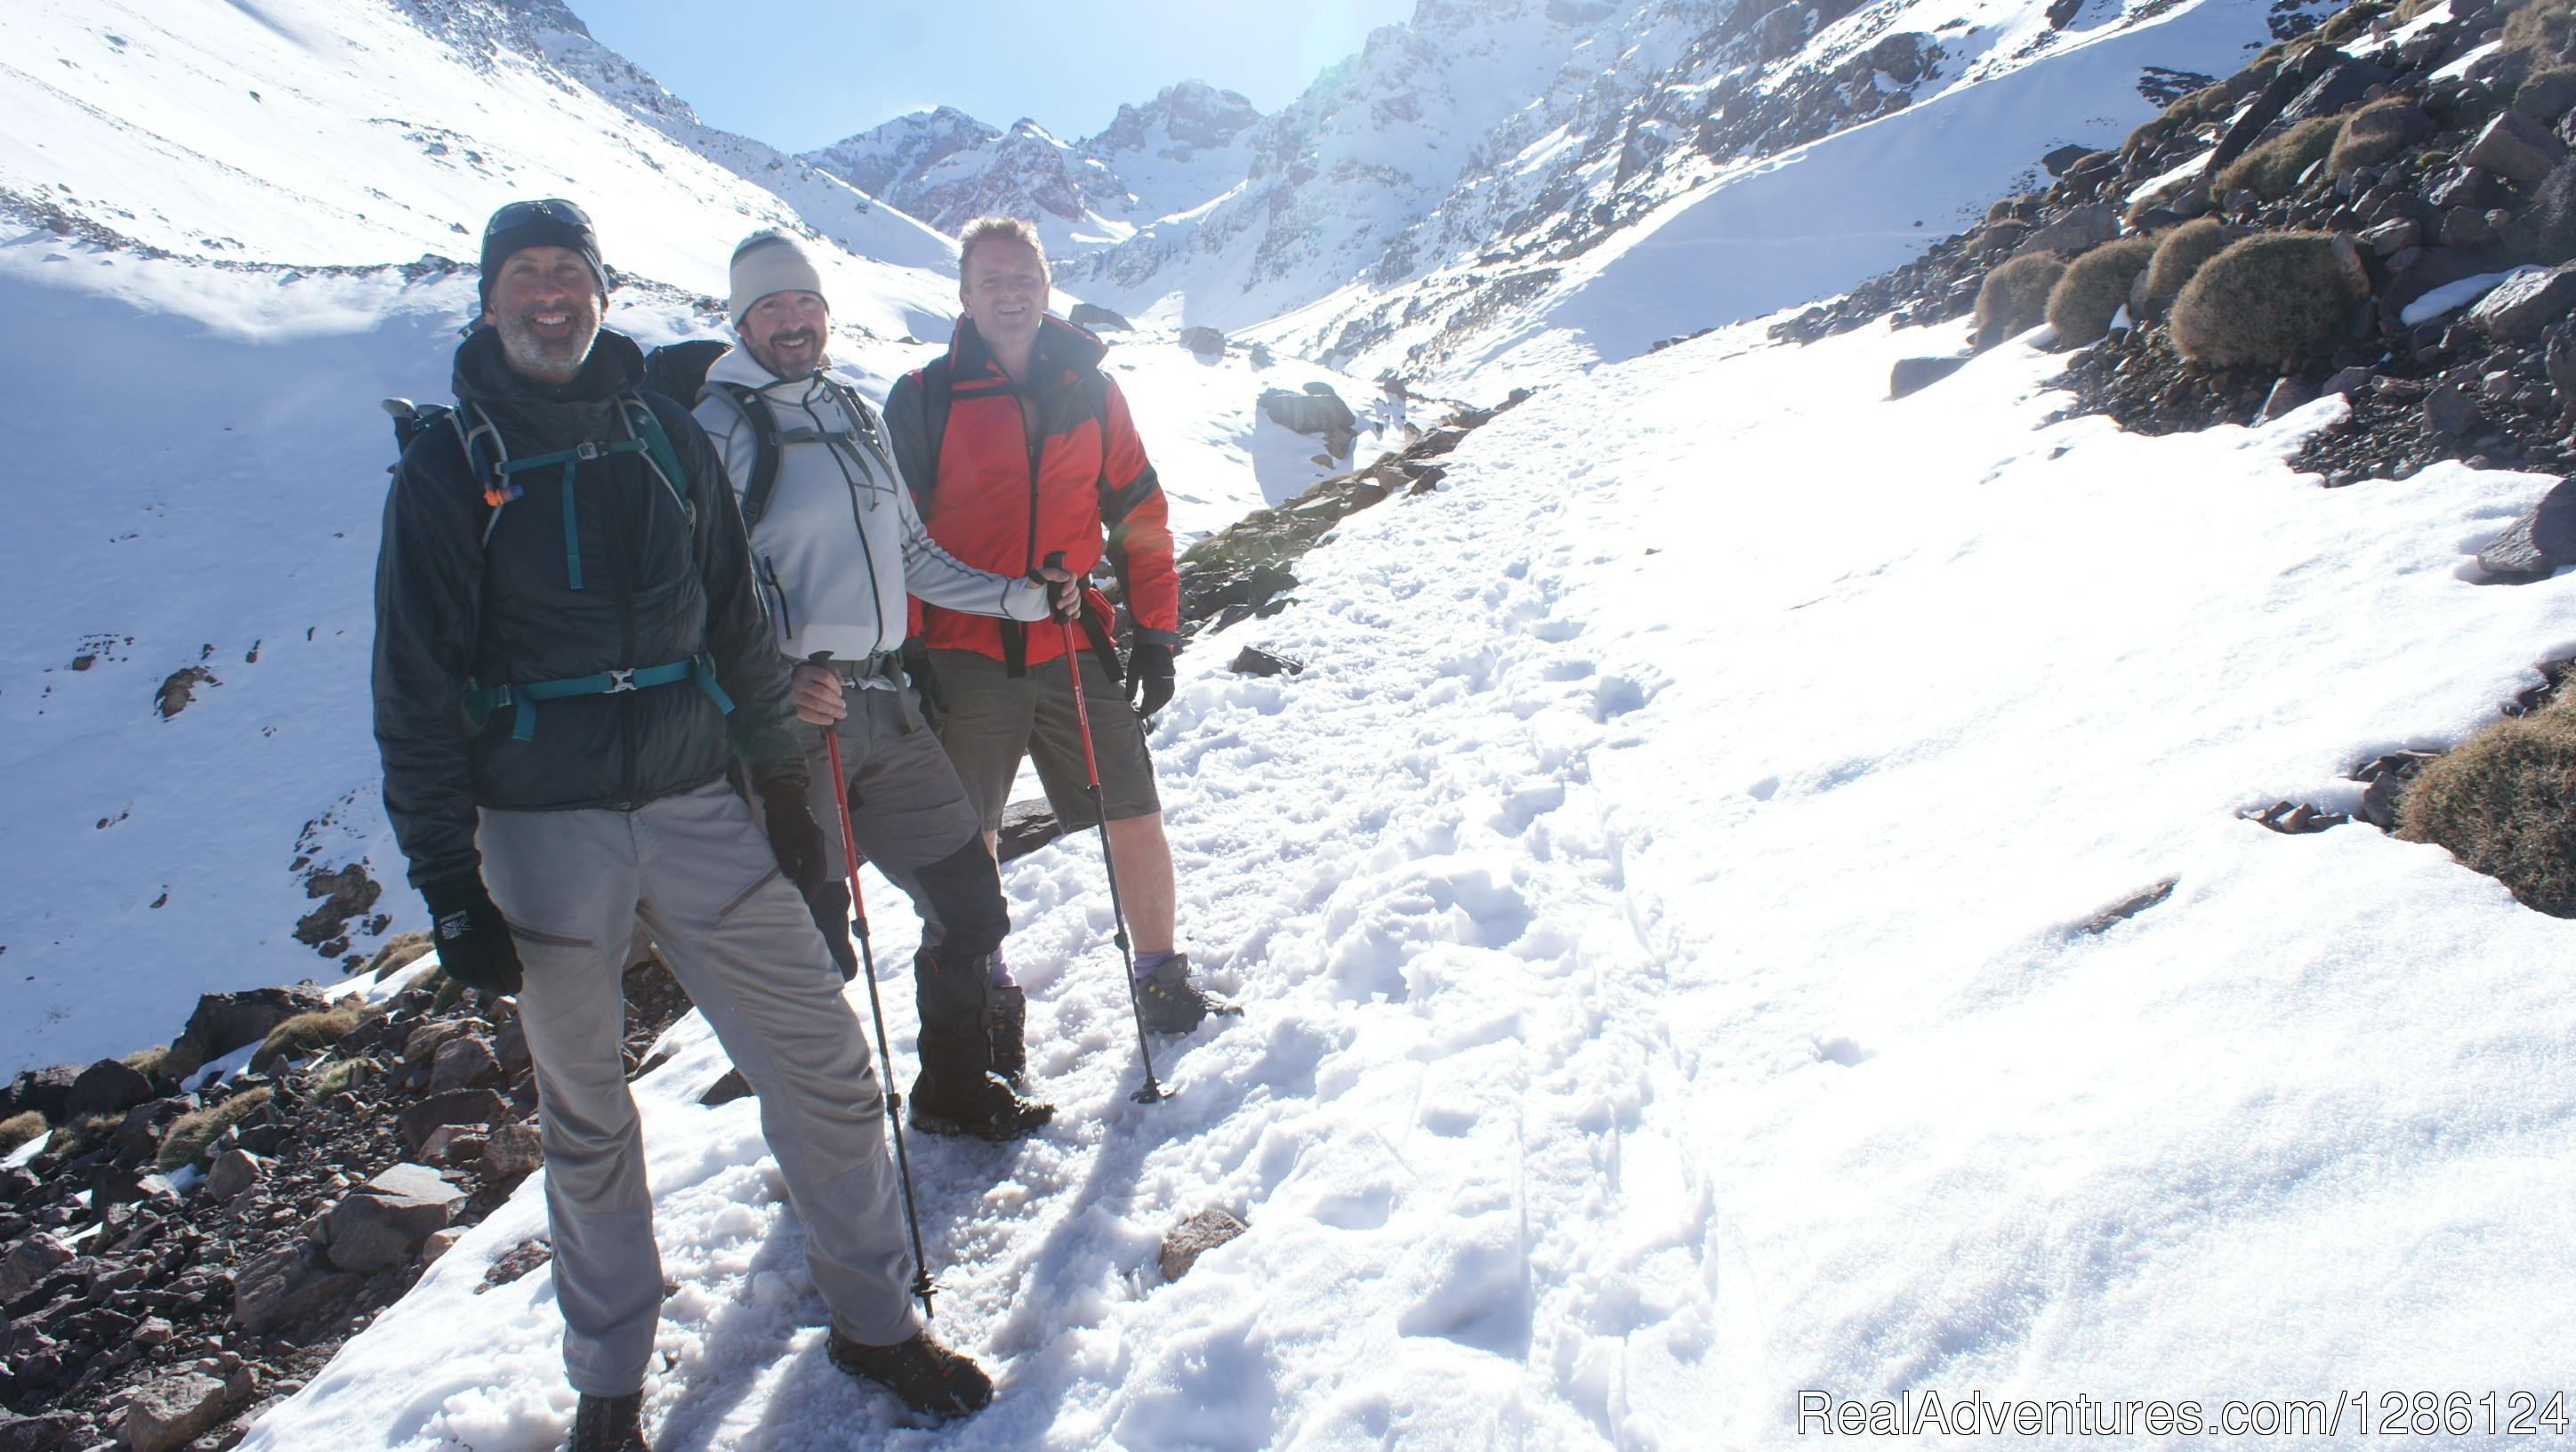 On the way to Toubkal